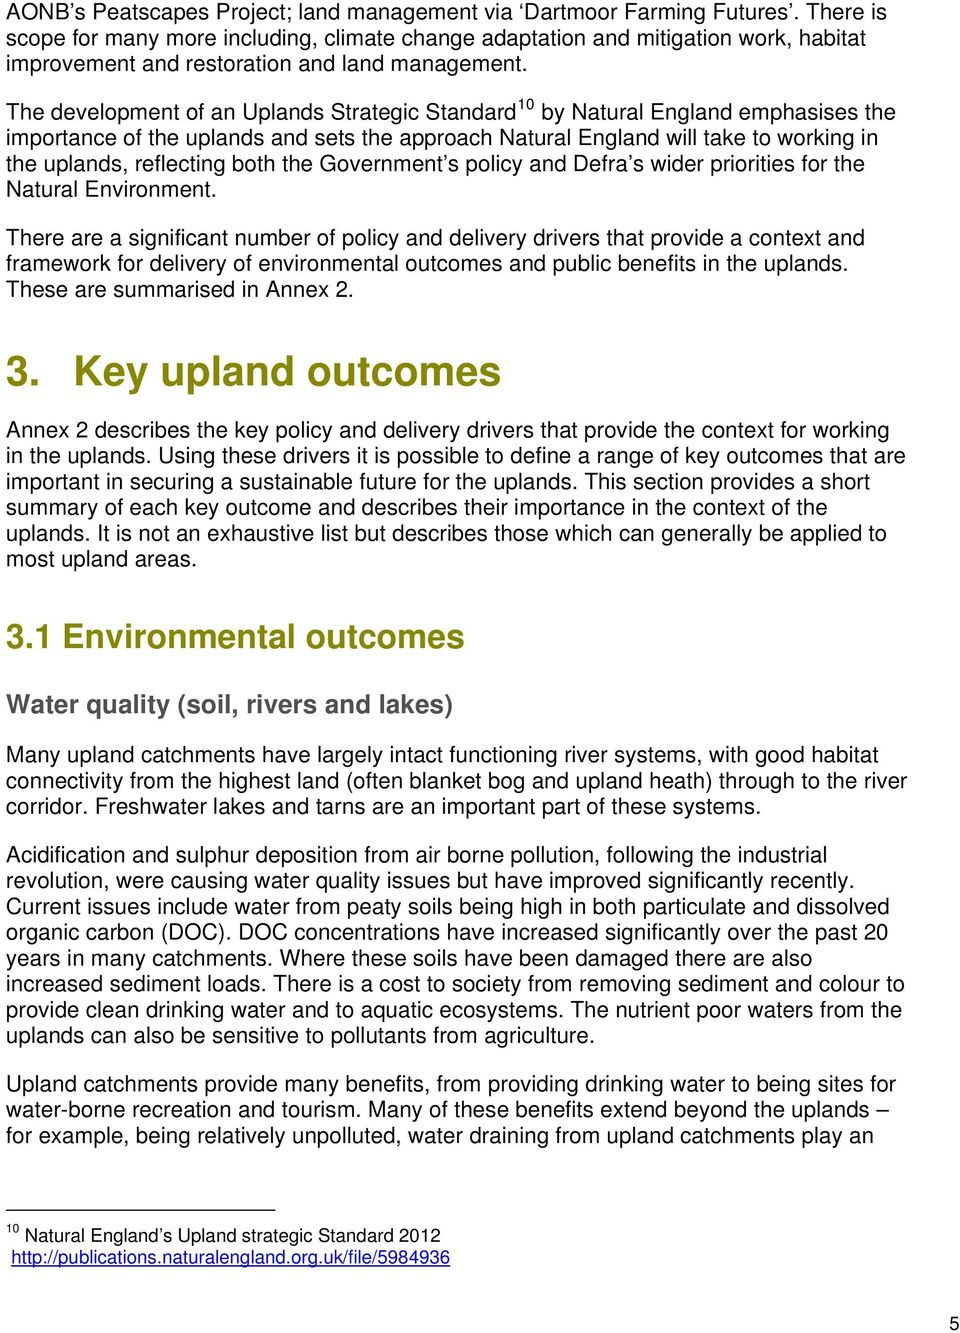 The development of an Uplands Strategic Standard 10 by Natural England emphasises the importance of the uplands and sets the approach Natural England will take to working in the uplands, reflecting